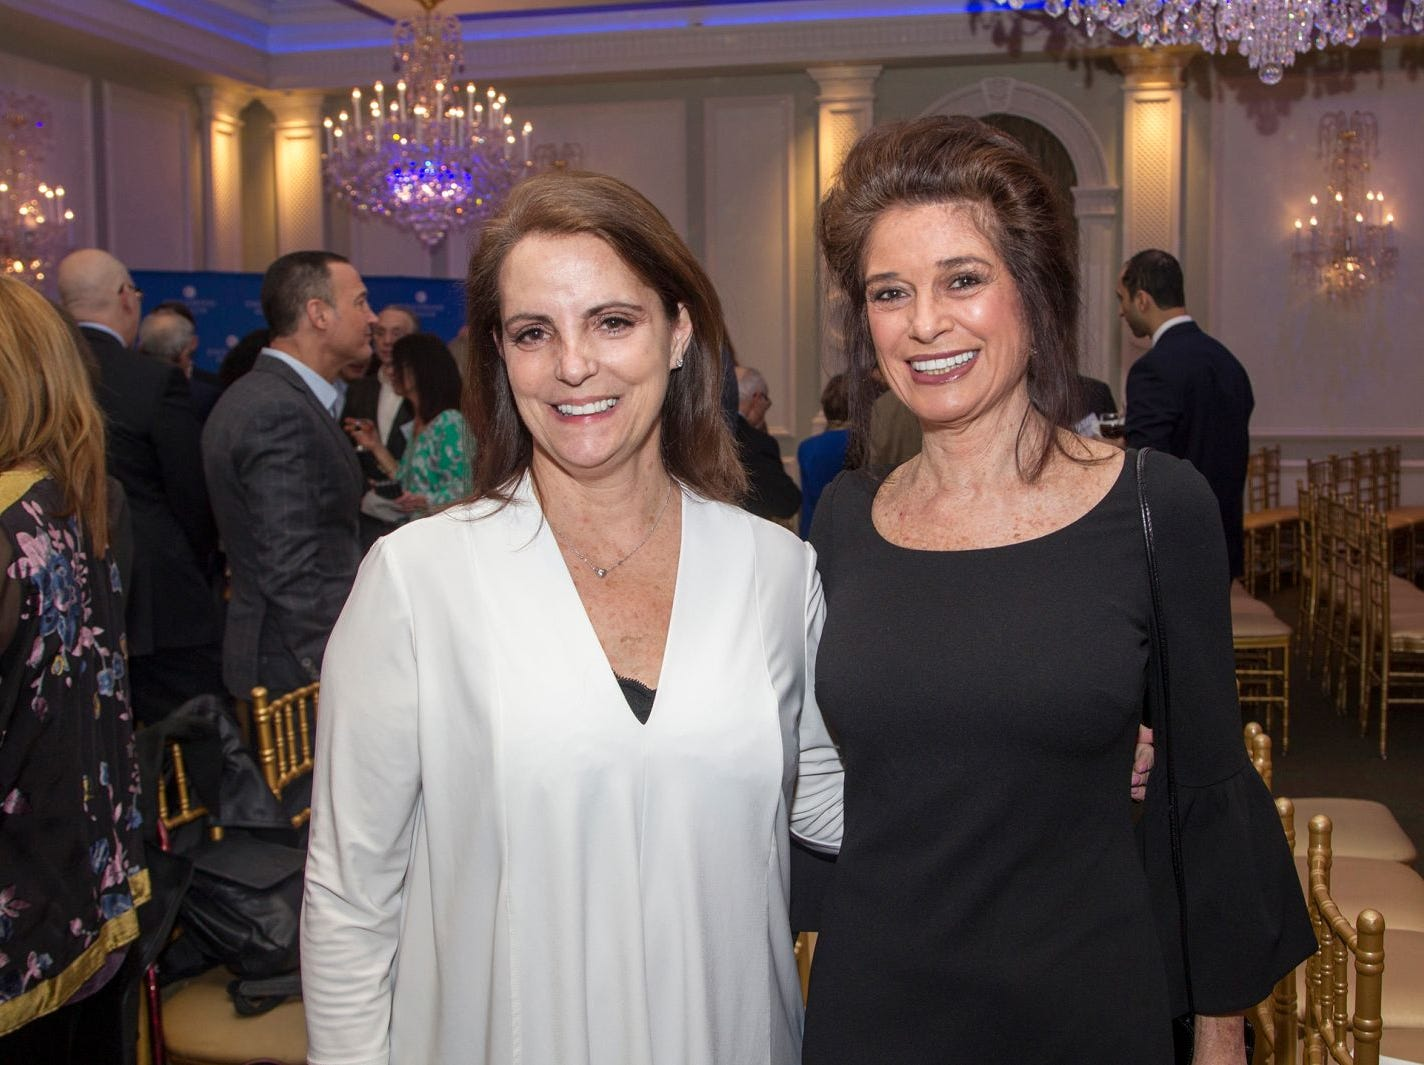 Dr. Diane Schwartz, Dr. Yvonne Callas. Englewood Health held its annual Medical Staff Recognition Dinner at Rockliegh Country Club. 01/17/2019